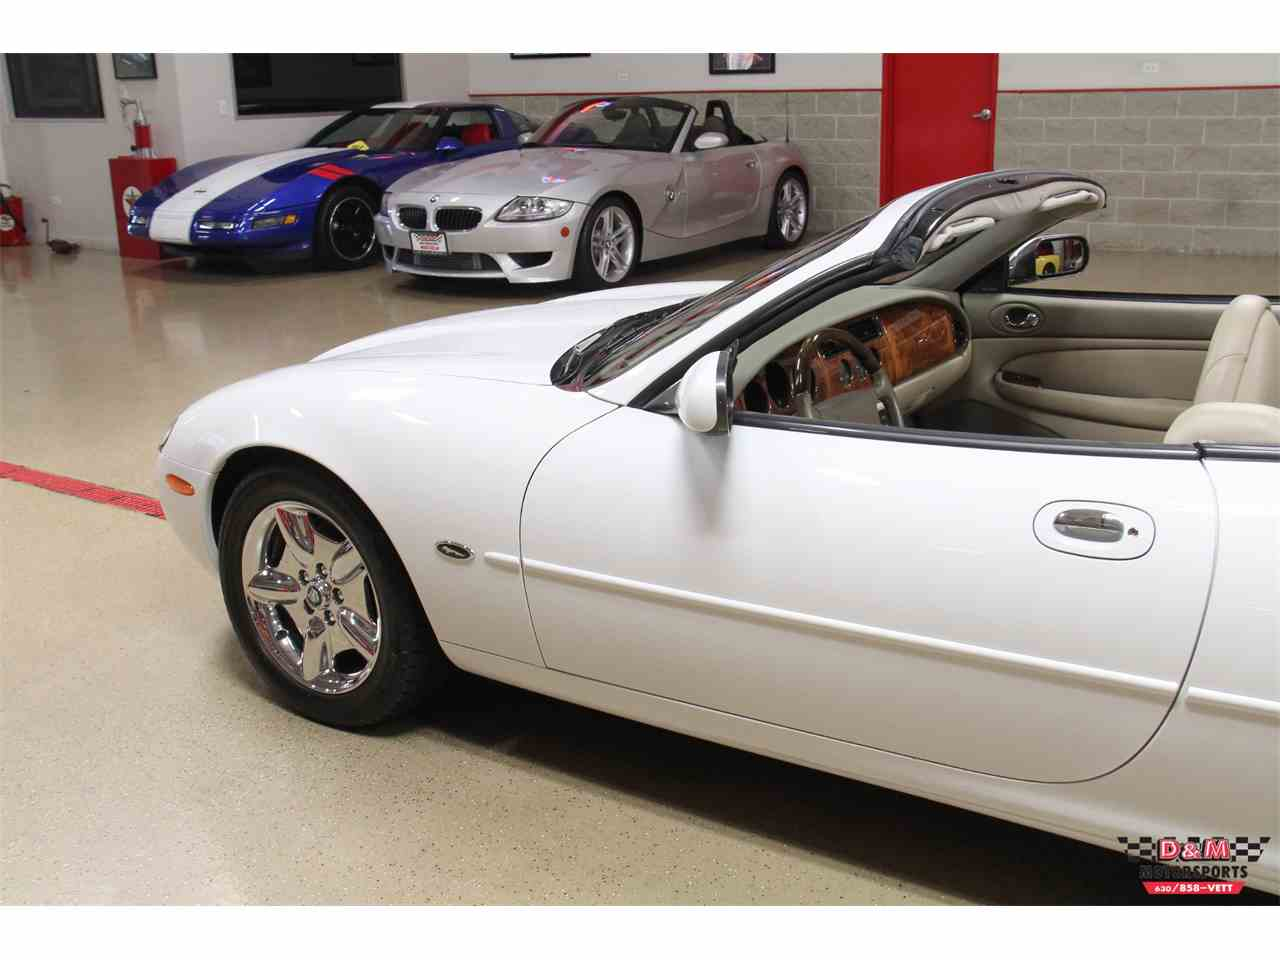 Large Picture of 1998 XK8 located in Illinois - $16,995.00 Offered by D & M Motorsports - MCA6